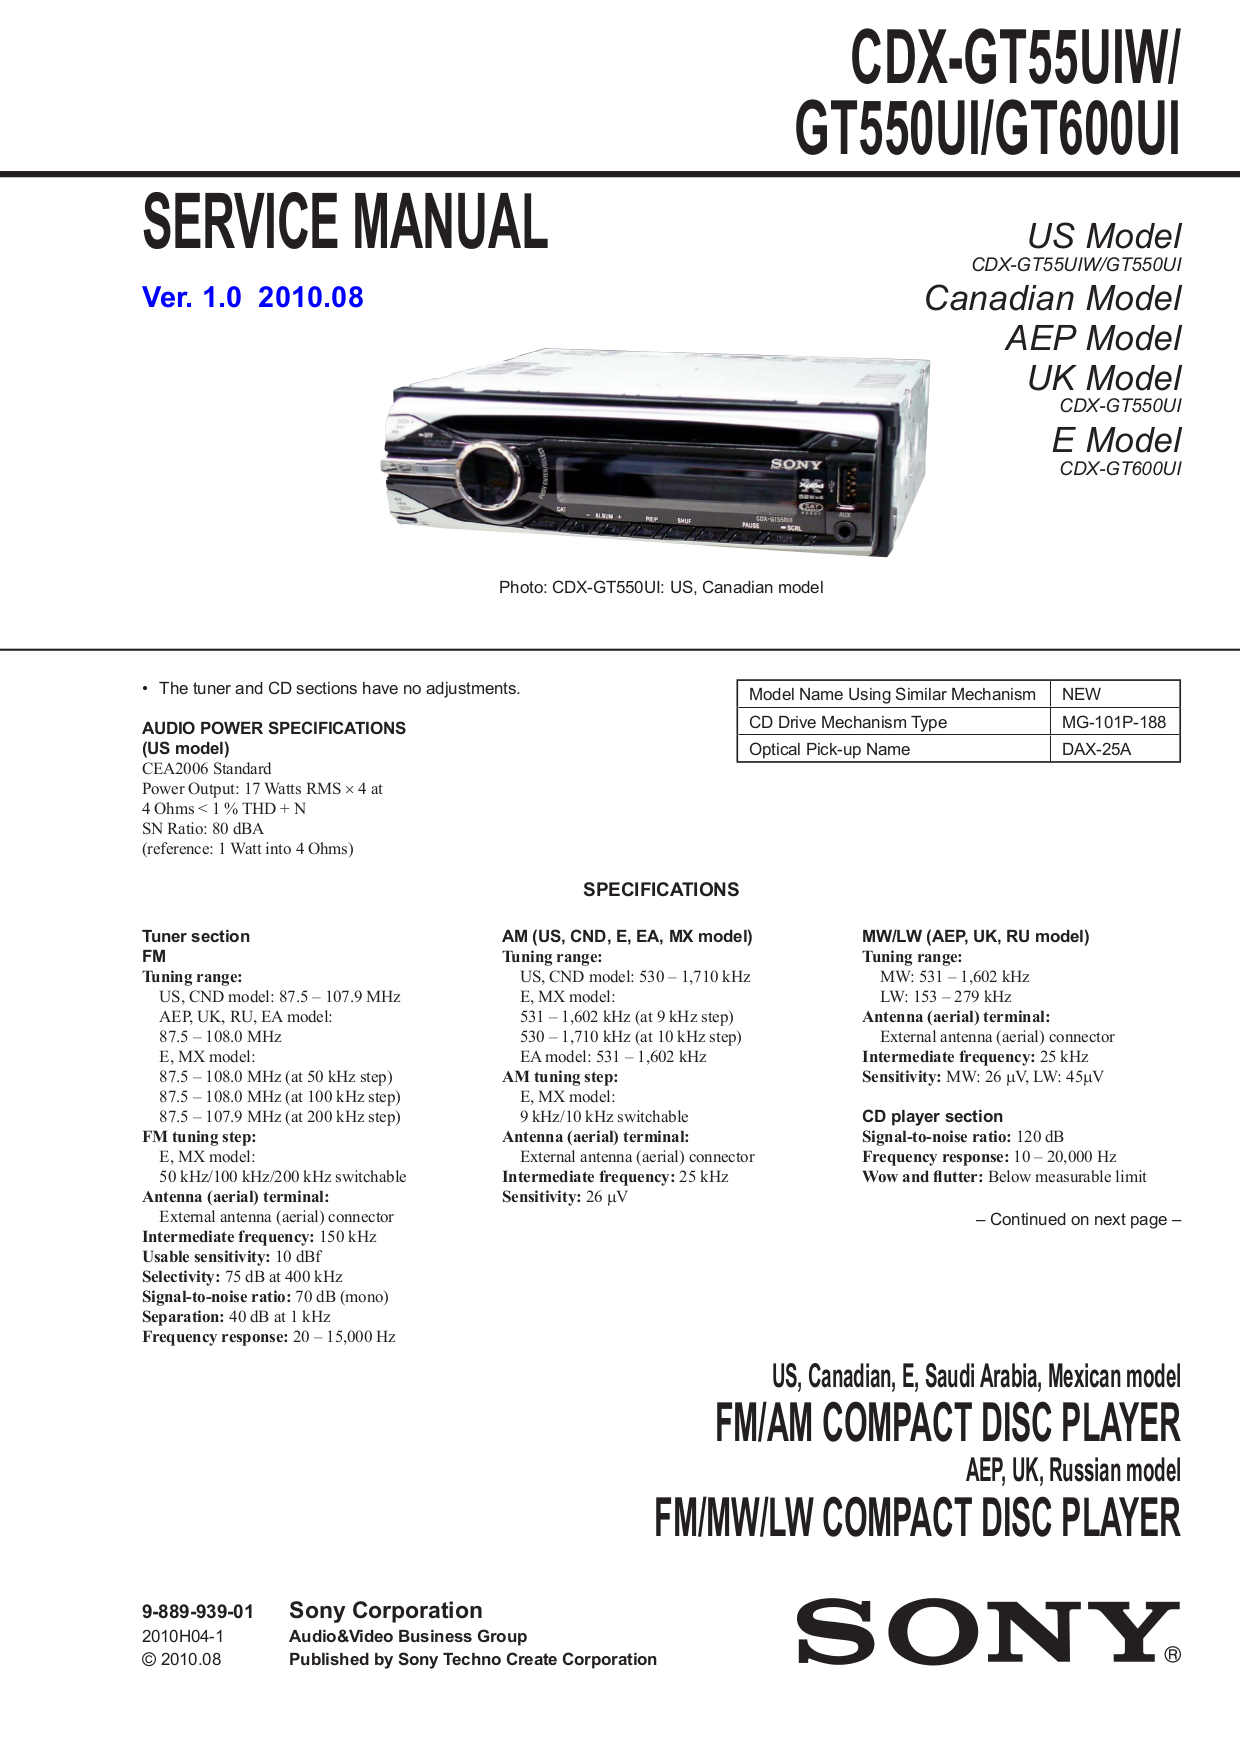 download free pdf for sony xplod cdx gt55uiw car receiver manual rh umlib com sony xplod cdx gt240 car stereo manual sony xplod mex-bt3800u bluetooth car stereo manual